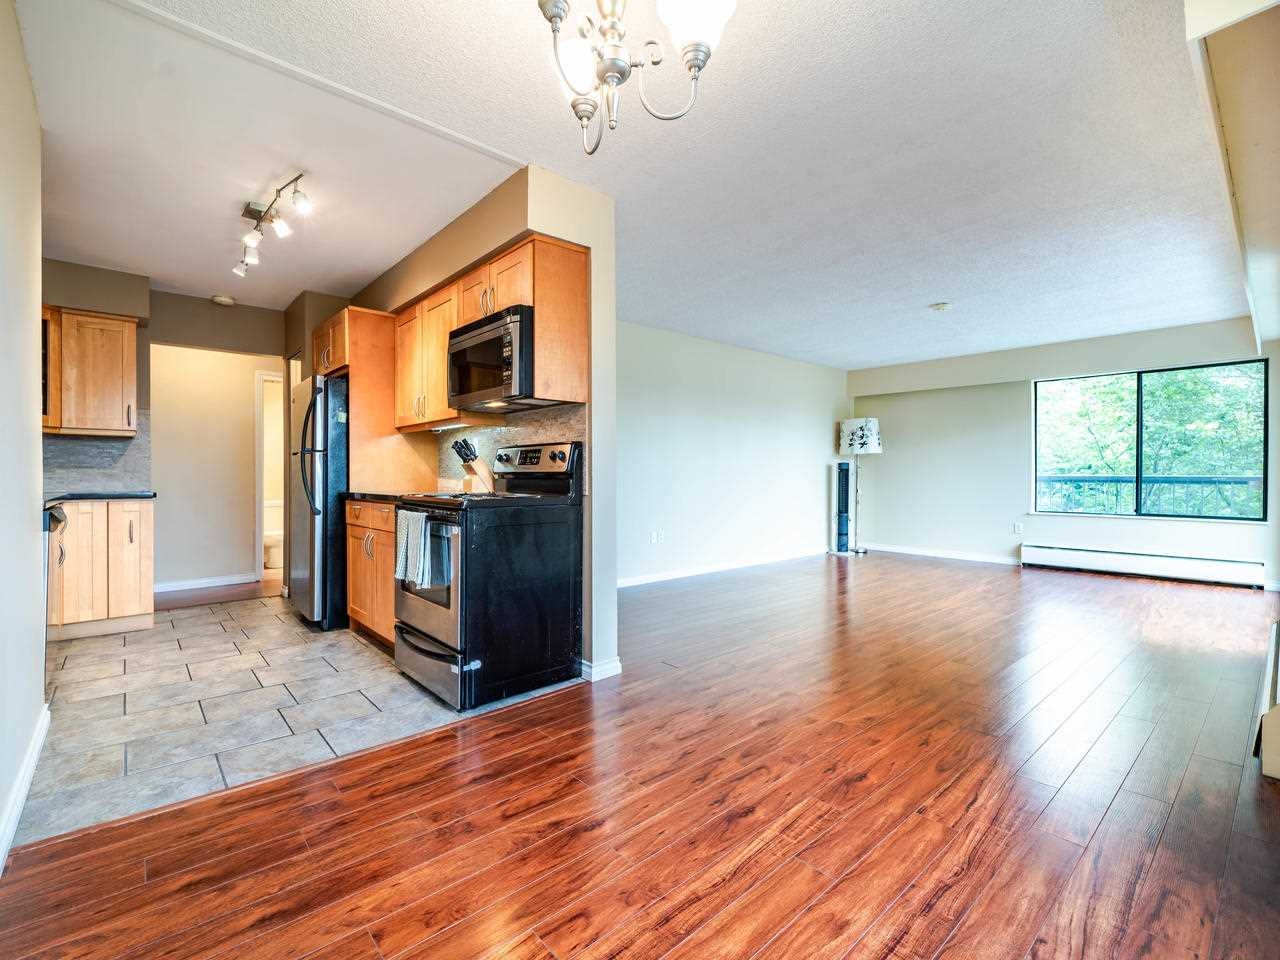 209 4345 GRANGE STREET - Central Park BS Apartment/Condo for sale, 2 Bedrooms (R2487035) - #1